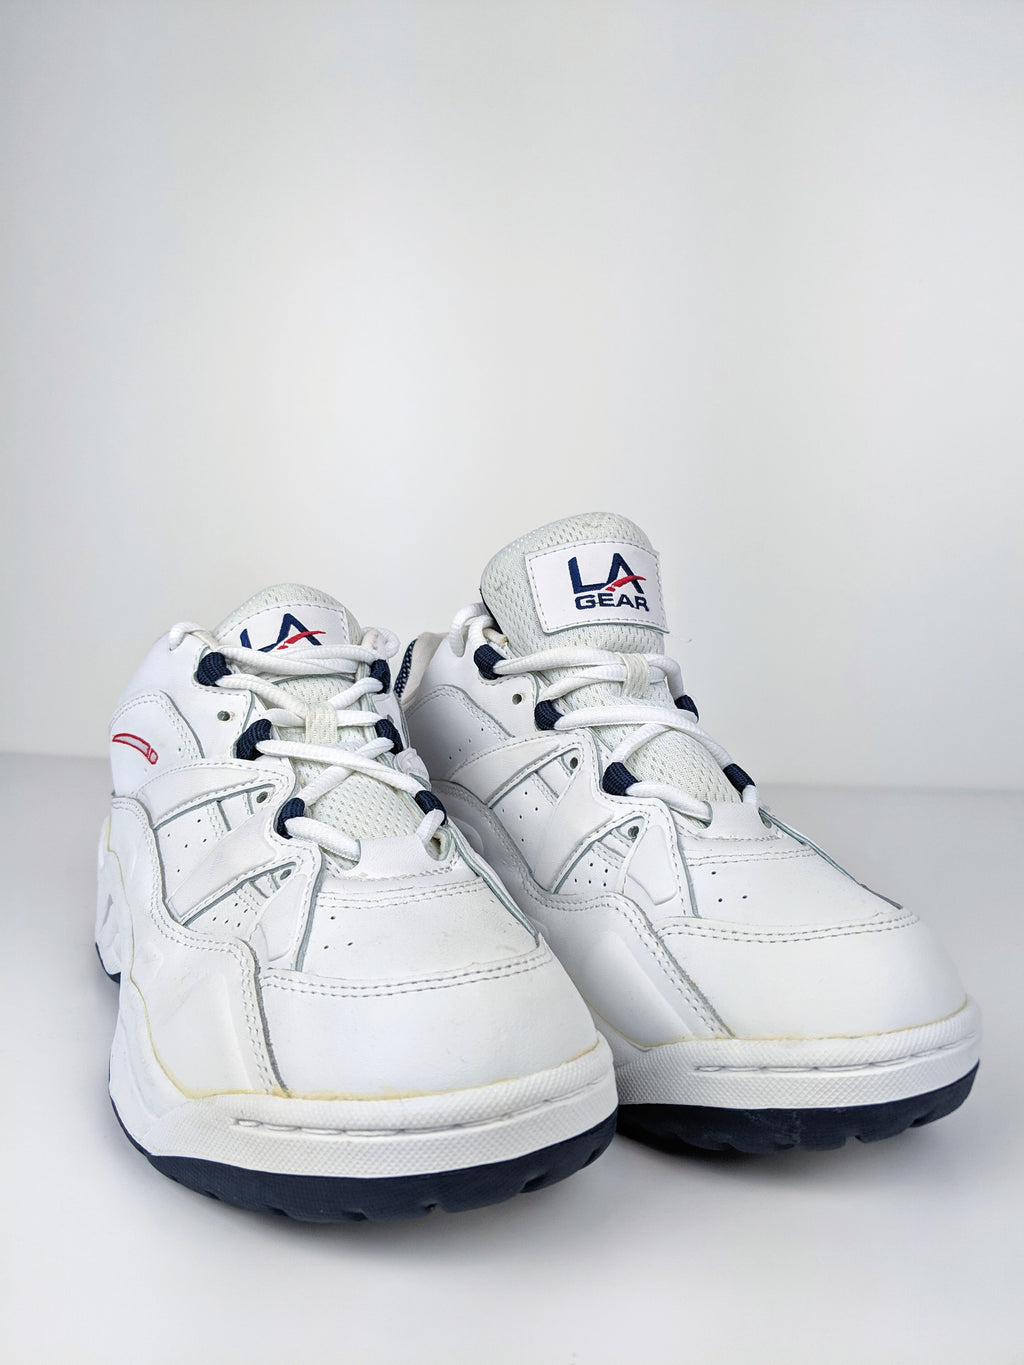 LA Gear Tennis Shoes (9)